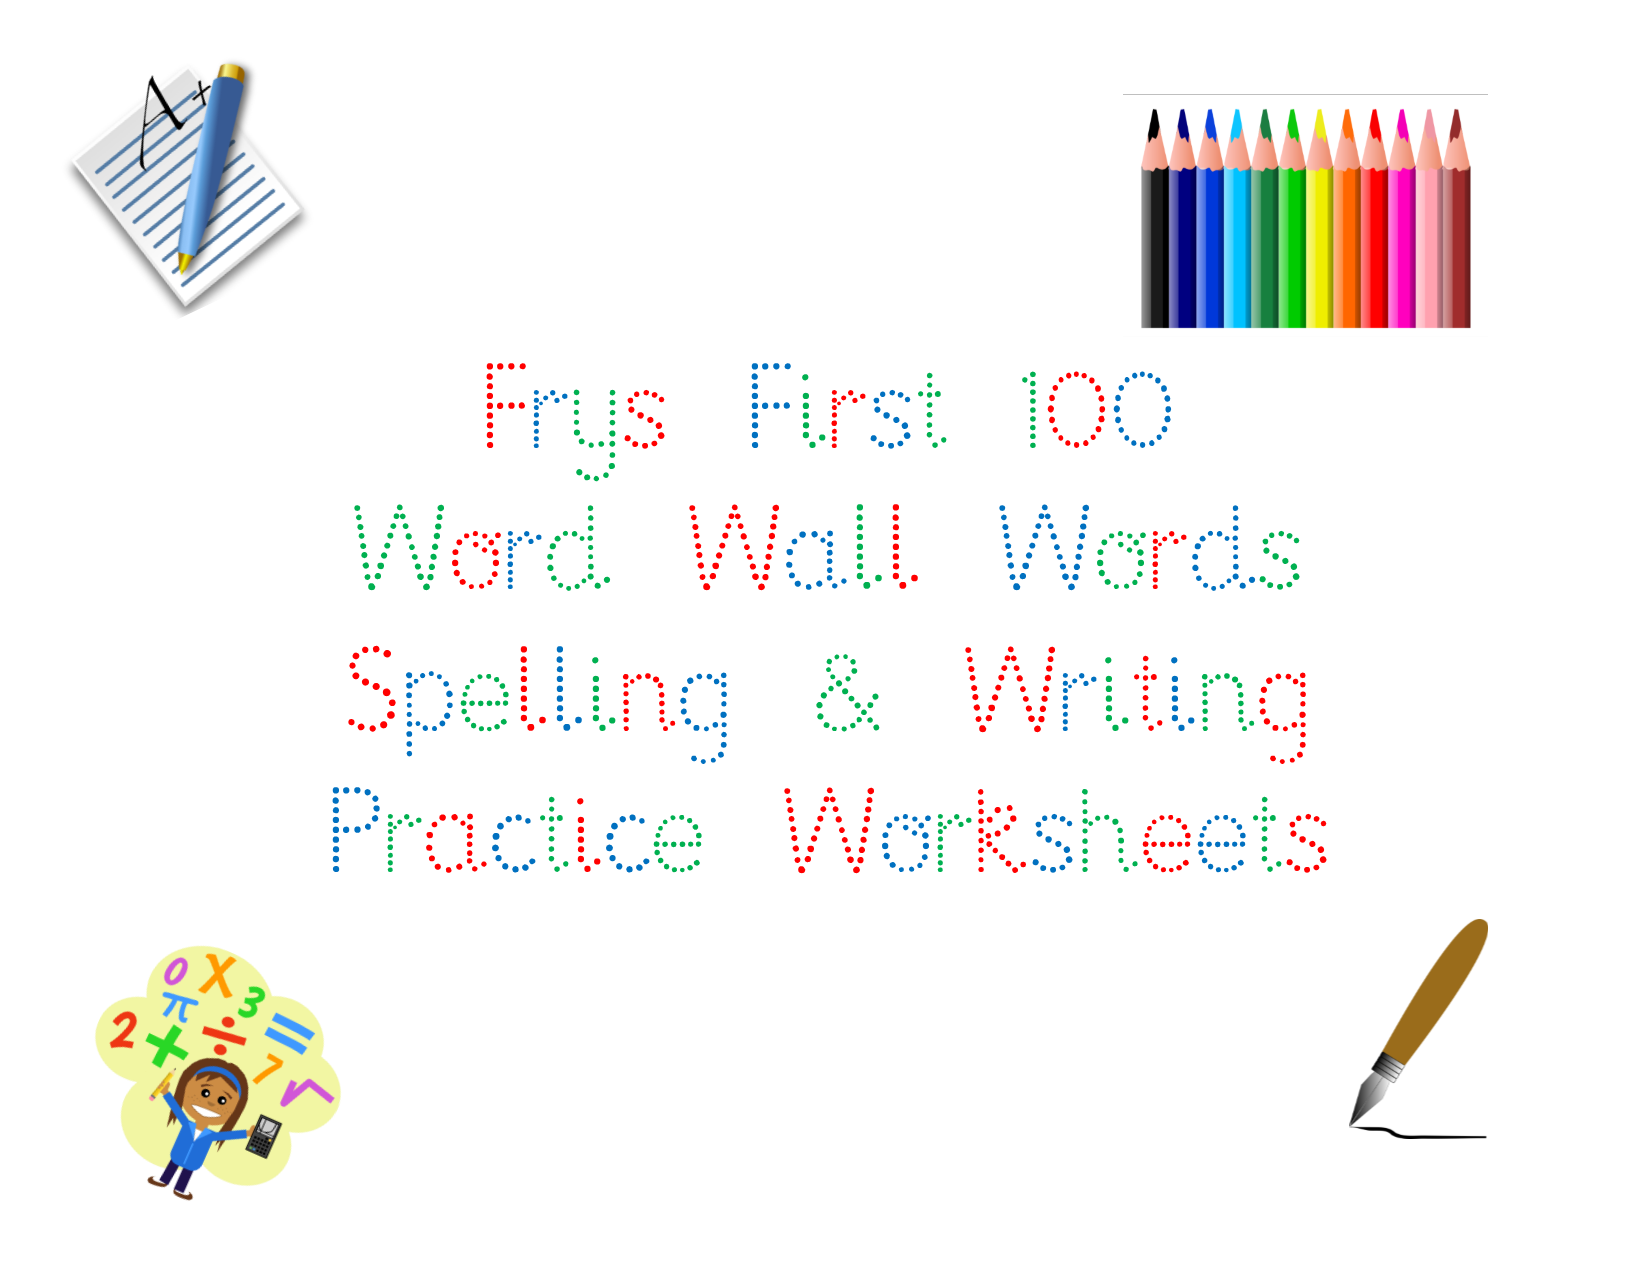 photo regarding Free Printable Spelling Practice Worksheets called No cost Printable! Frys 1st 100 Term Wall Phrases Creating and